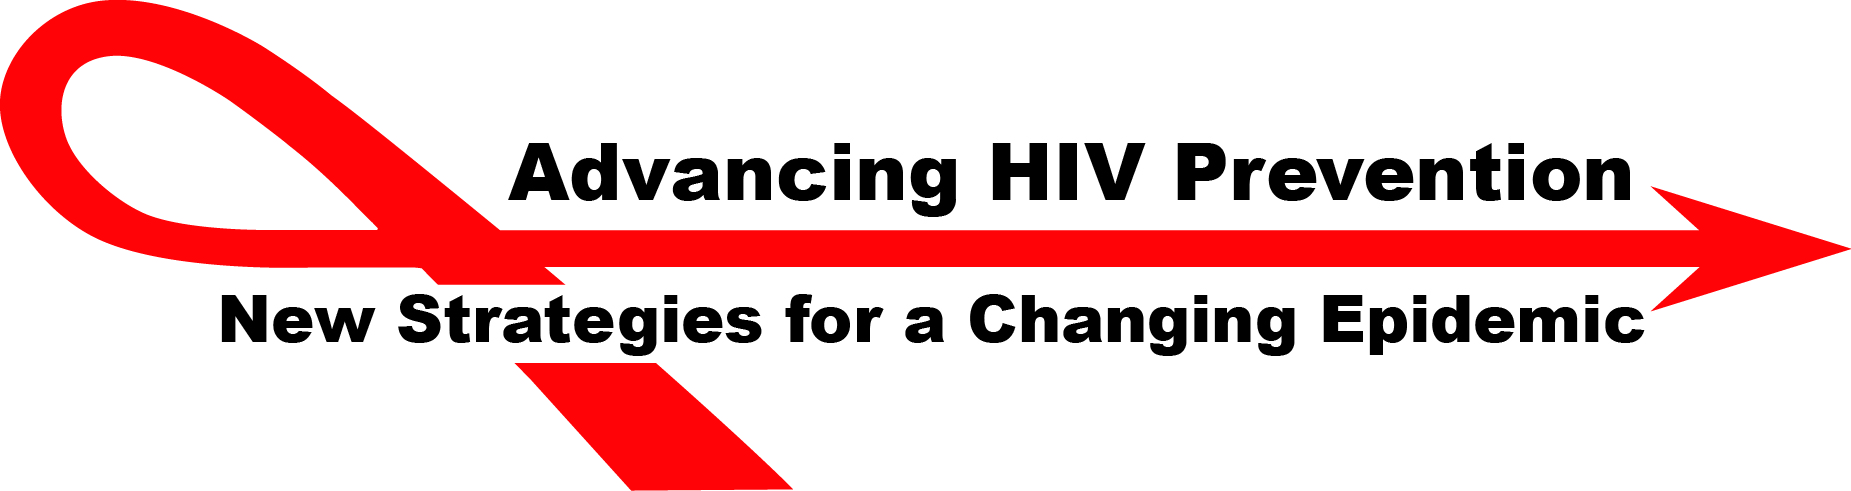 Logo for Advancing HIV Prevention, new strategies for a changing epidemic